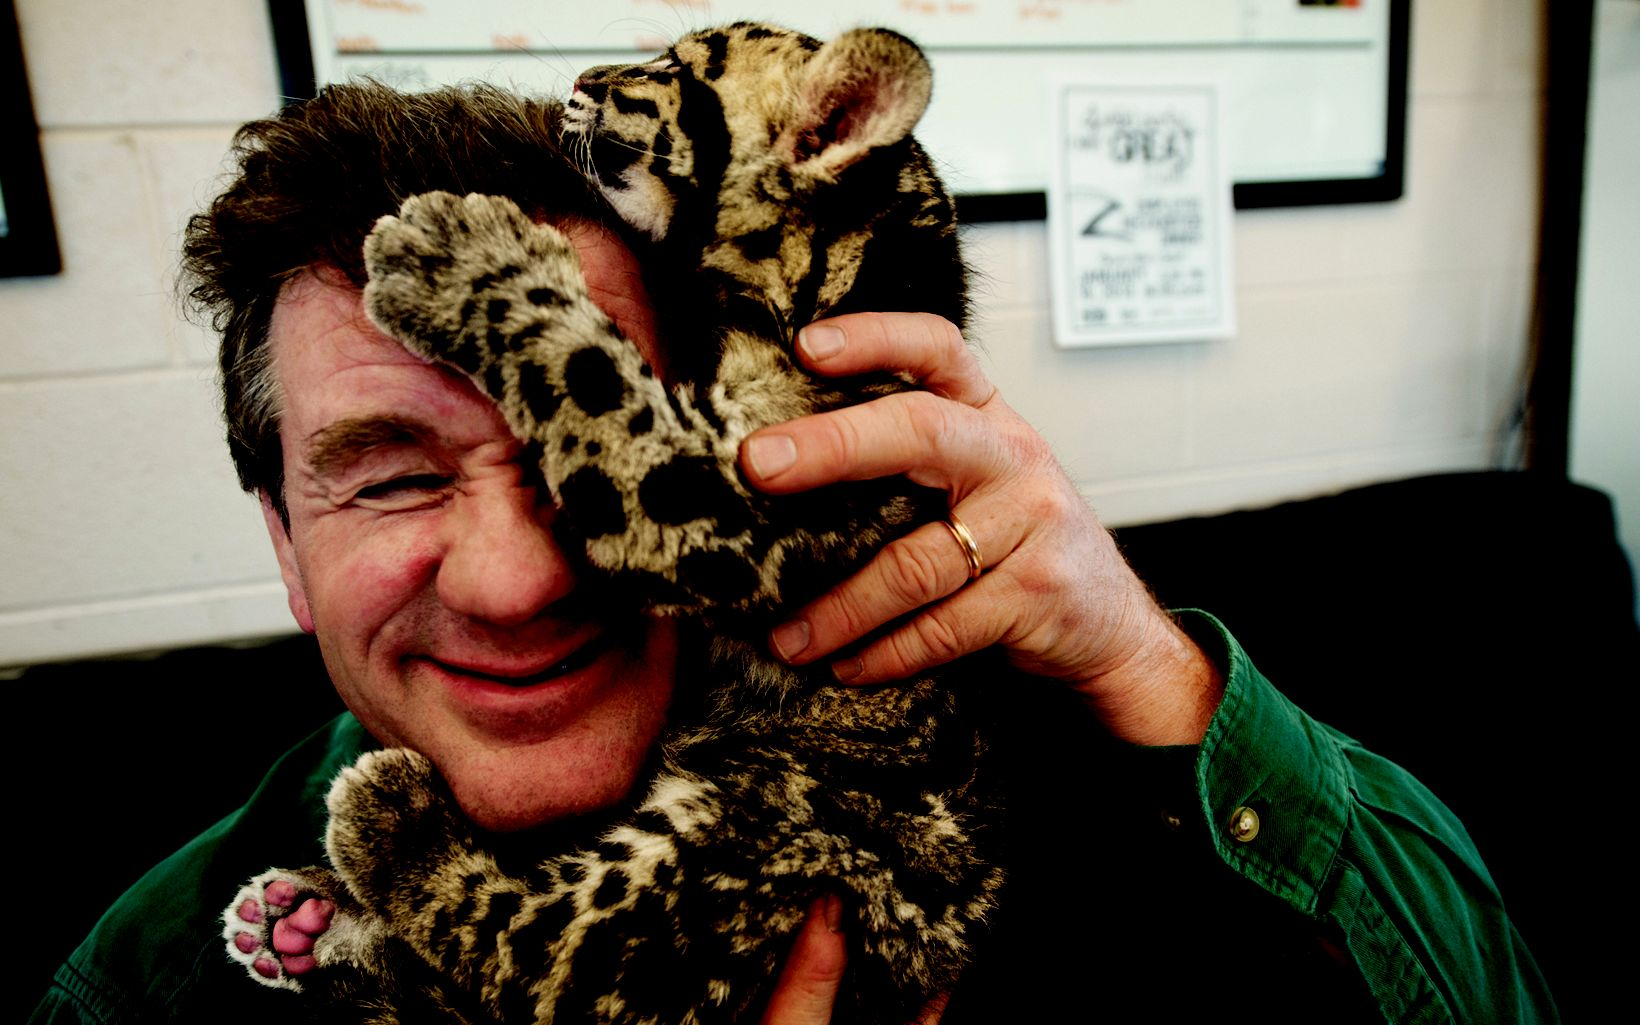 After a photo shoot at the Columbus Zoo in Ohio, a clouded leopard cub climbs on Sartore's head. Part of the National Geographic Photo Ark, natgeophotoark.org.